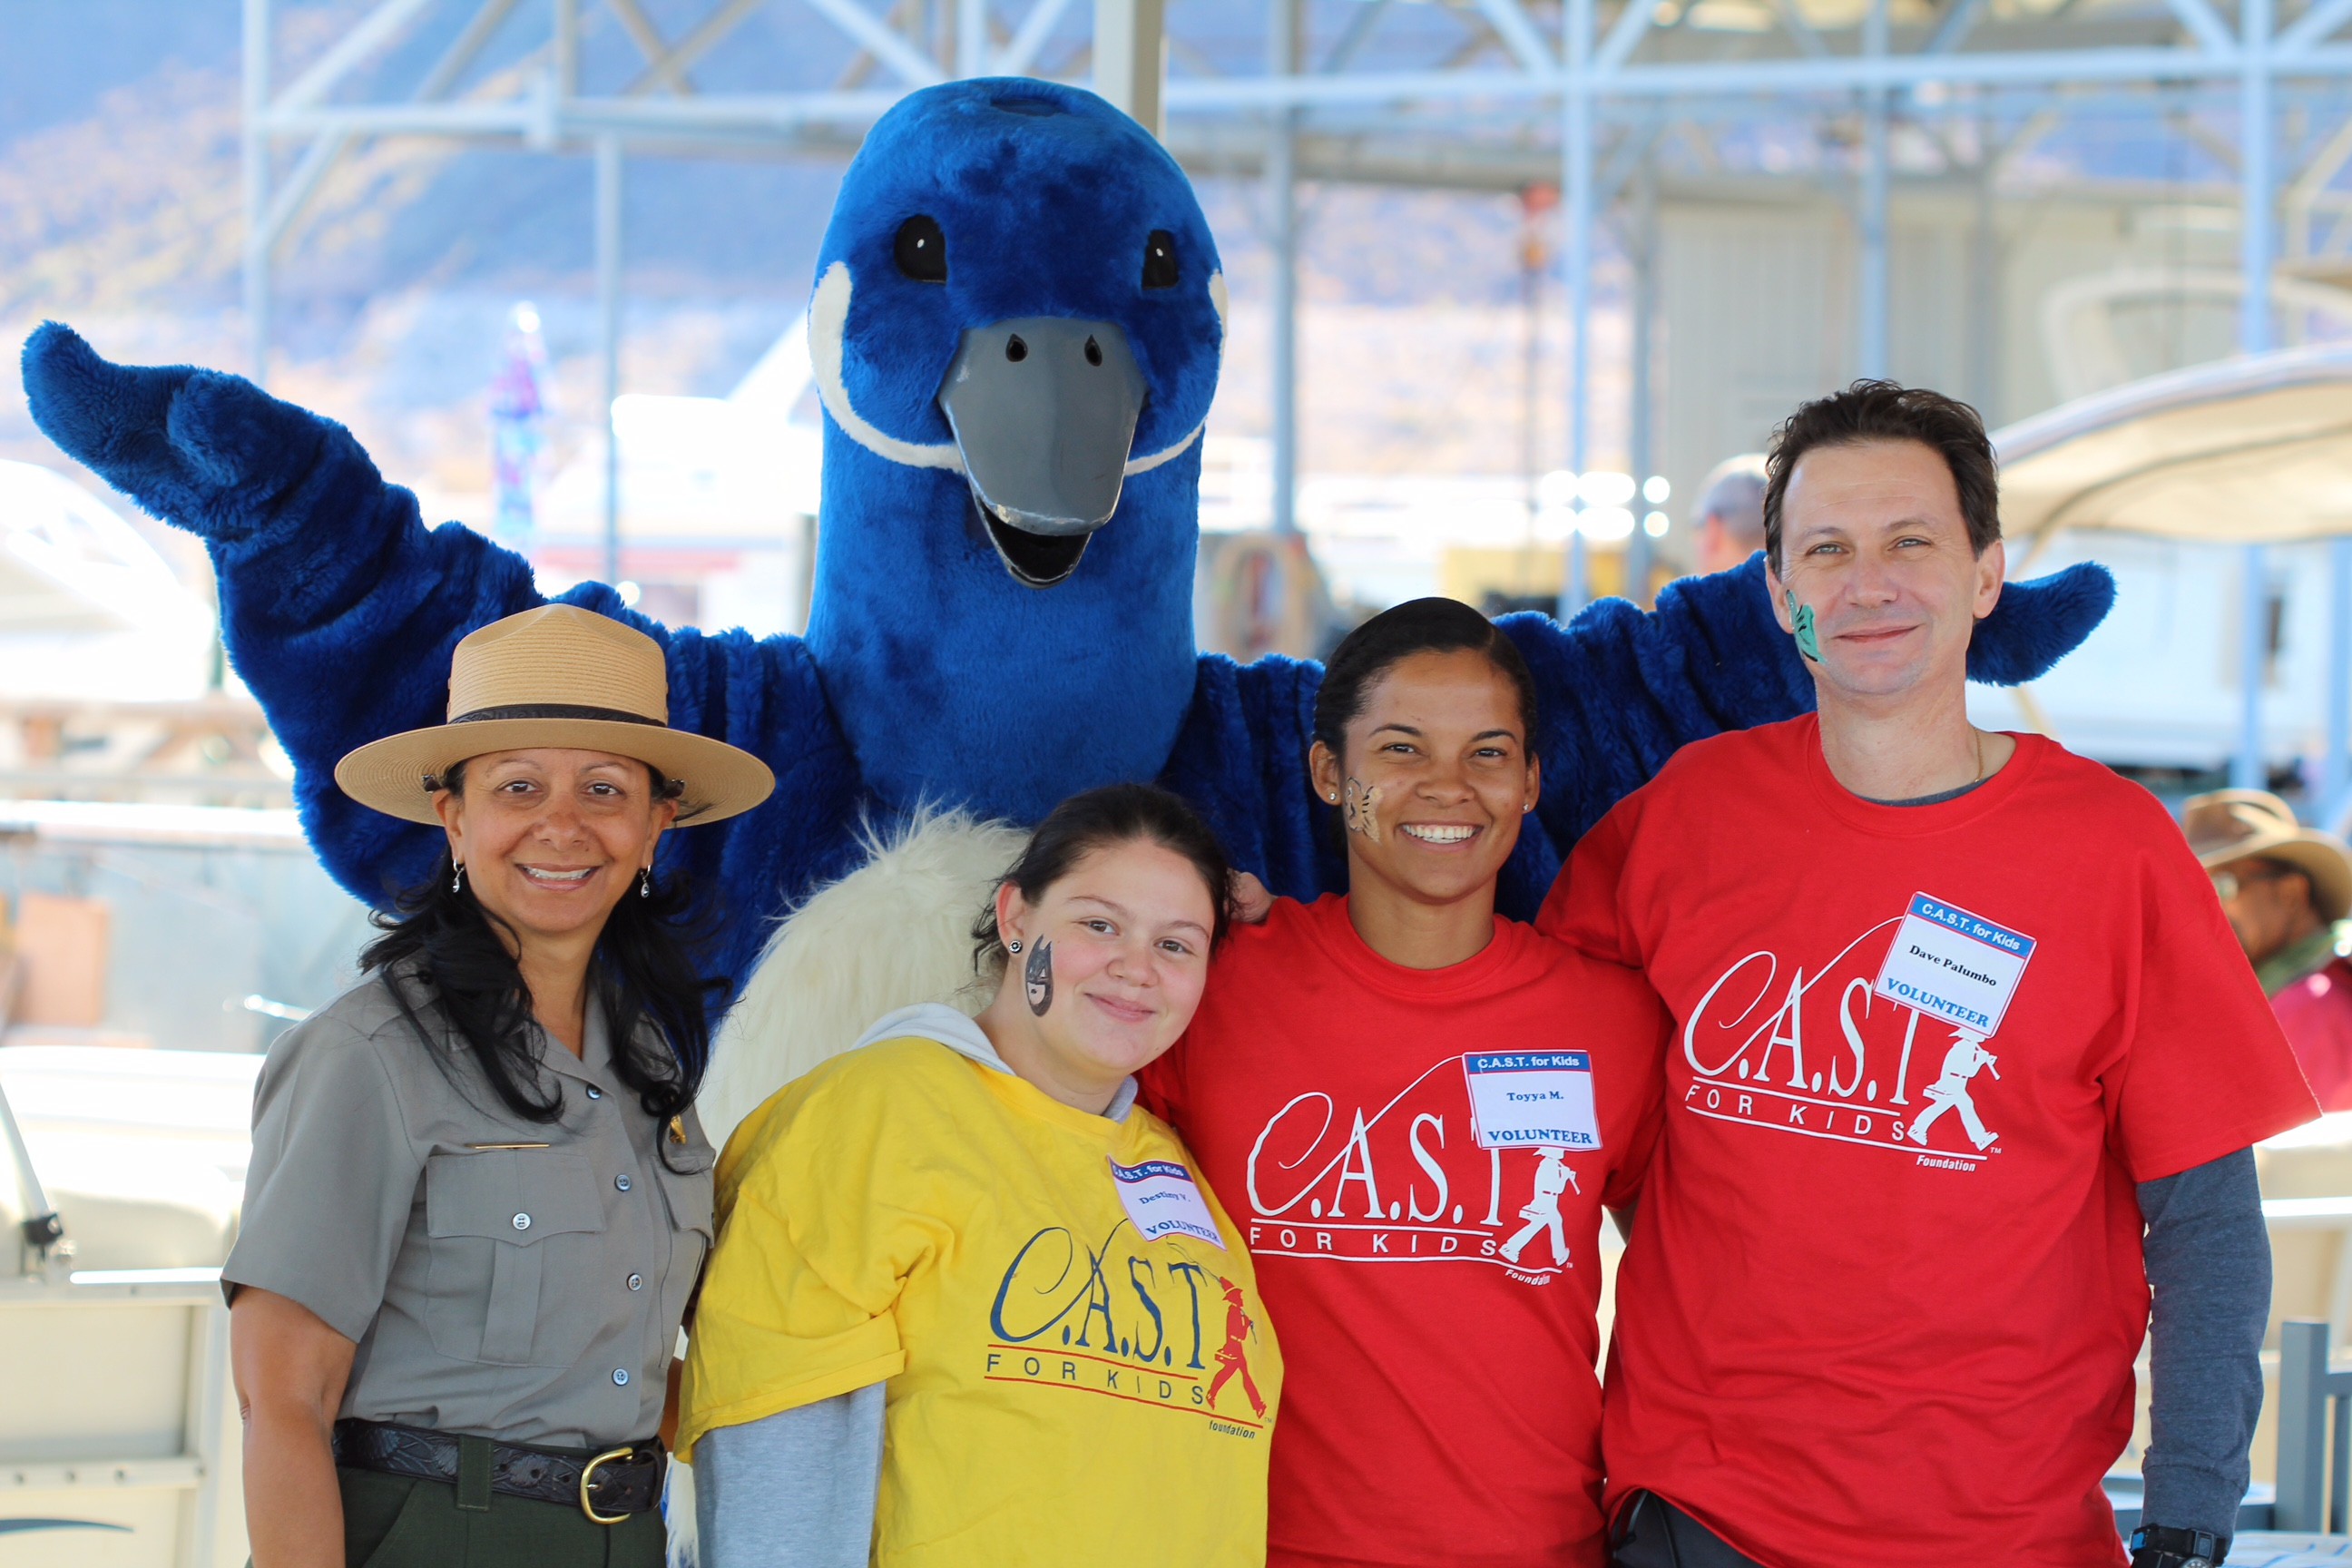 A group of volunteers at the C.A.S.T. for Kids event at Lake Mead, including Reclamation's Deputy Commissioner for Operations David Palumbo.